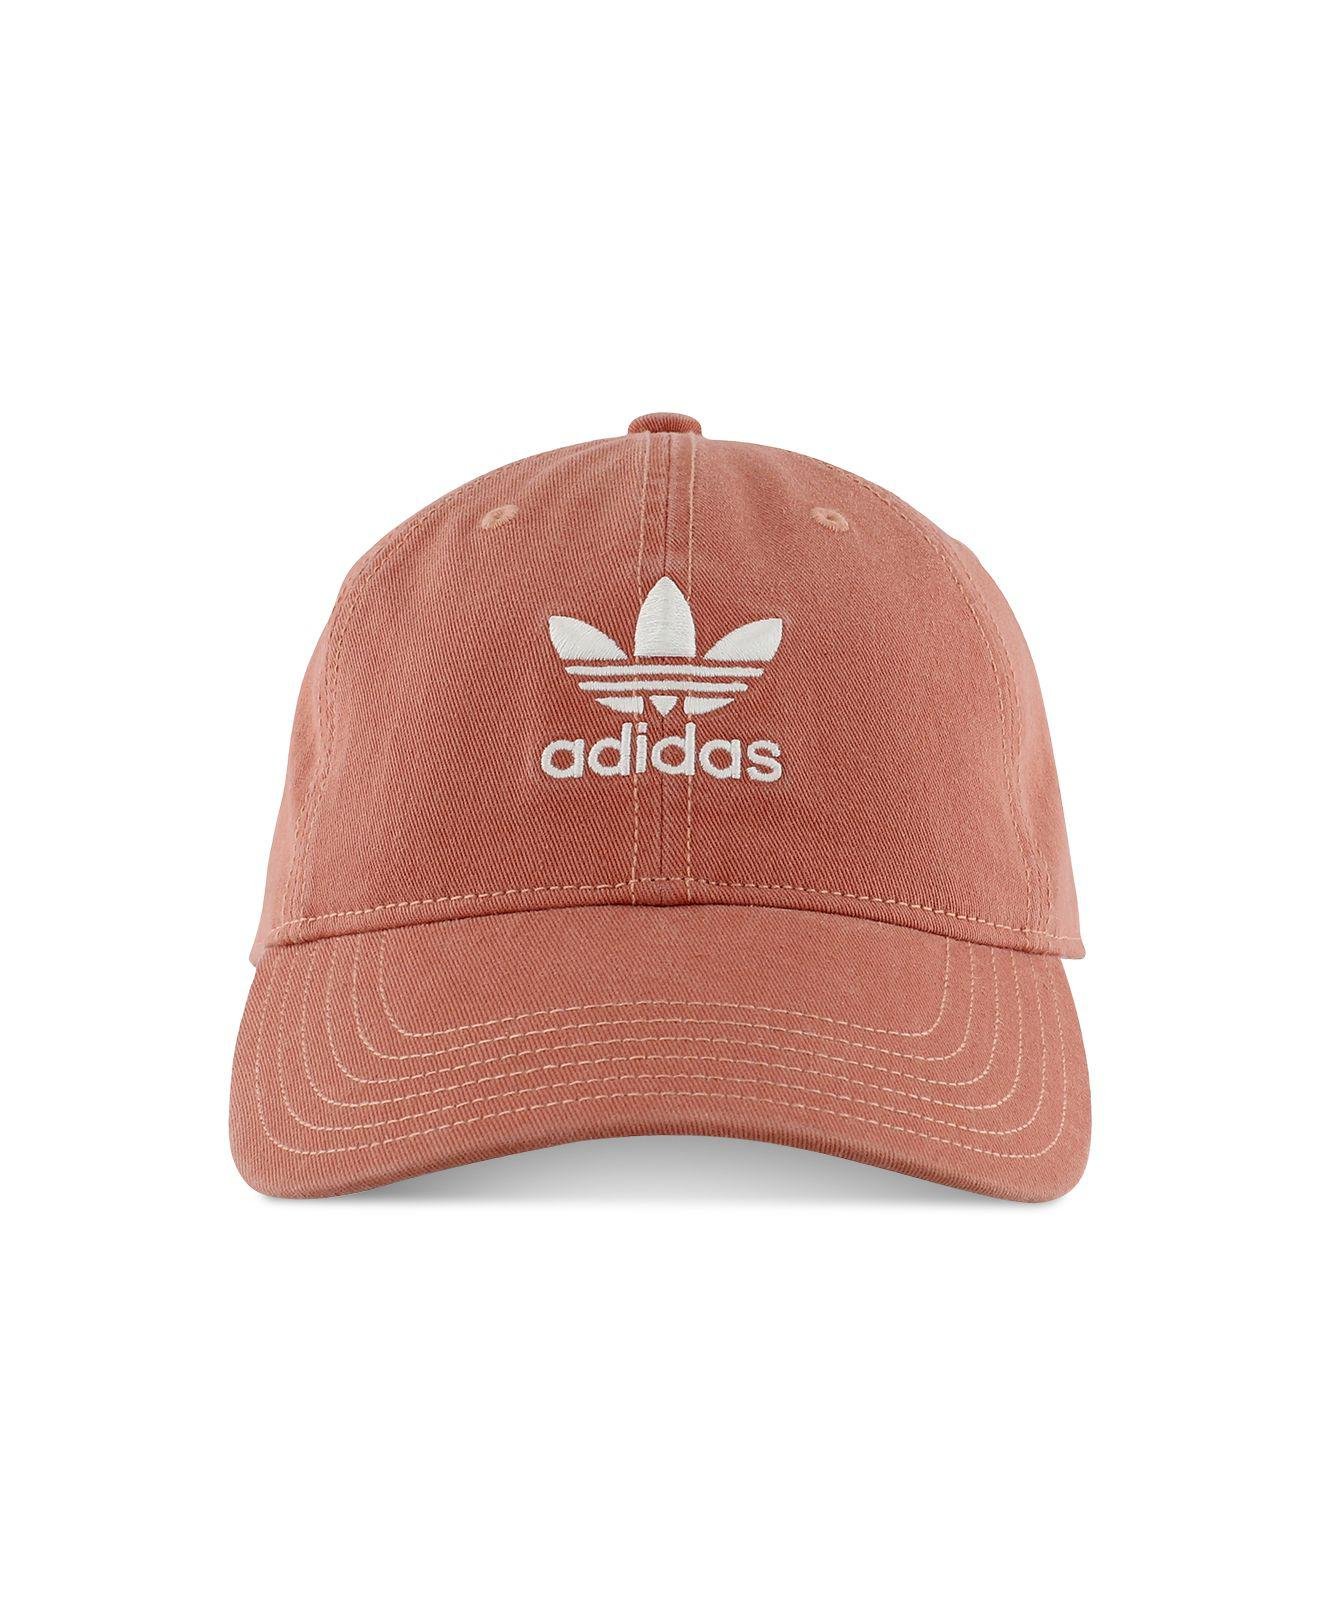 8f6ce2b6871d4 where to buy lyst adidas originals mens hat in red for men 55a4f 753be